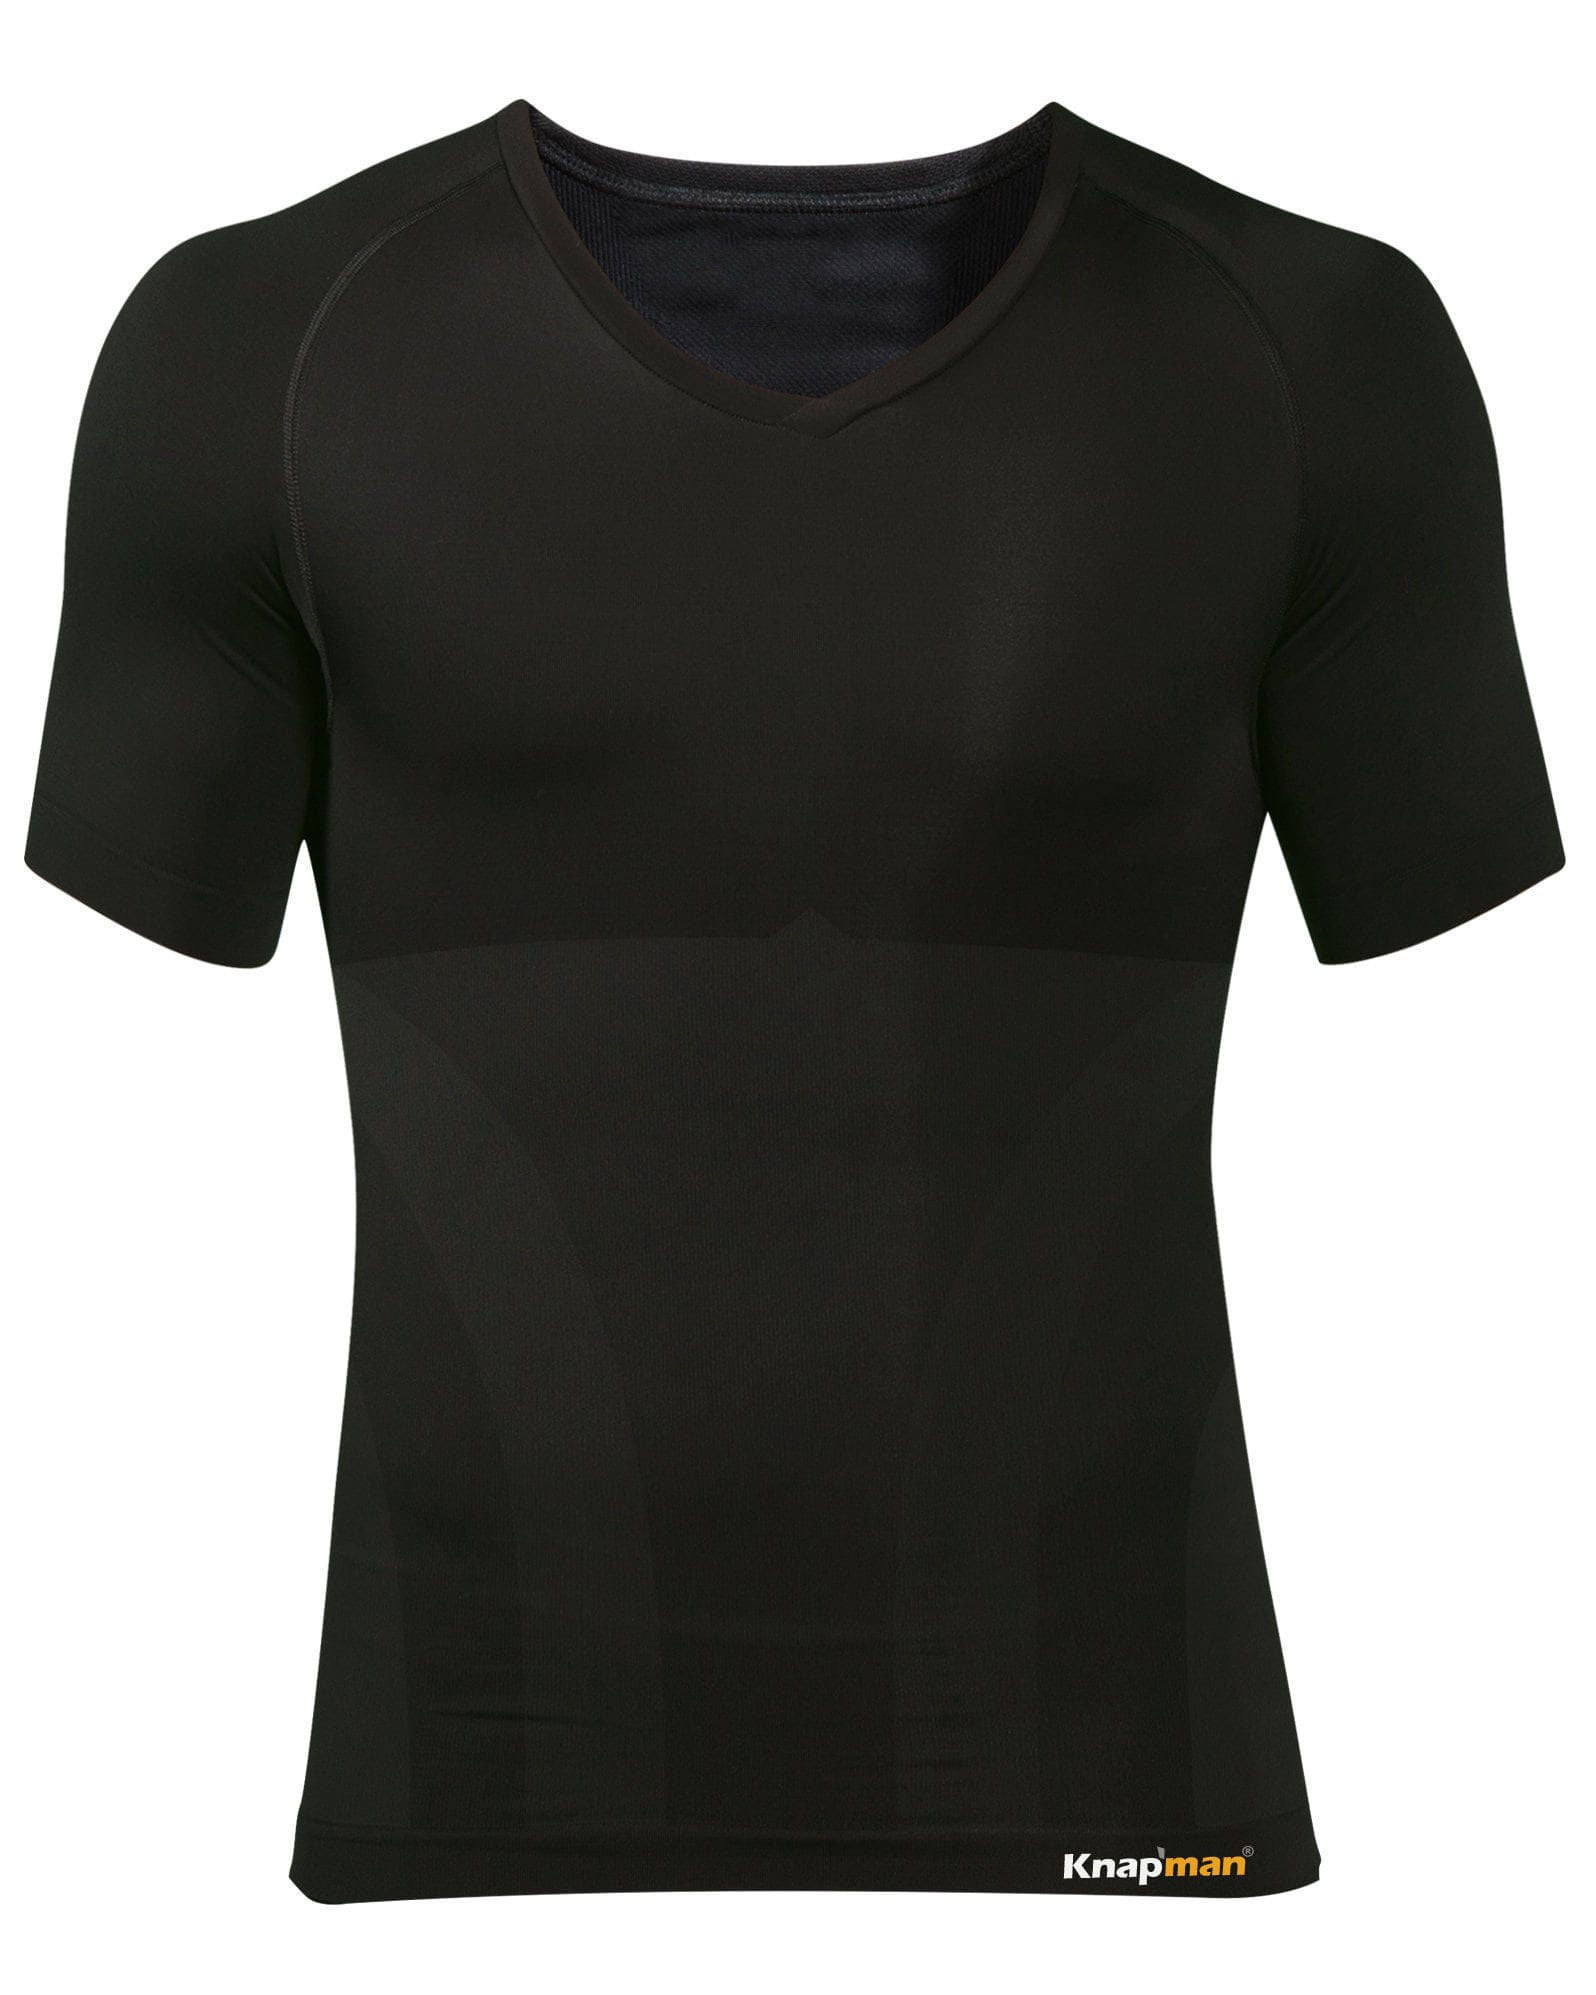 Knap'man Zoned Cotton Comfort V-hals shirt zwart